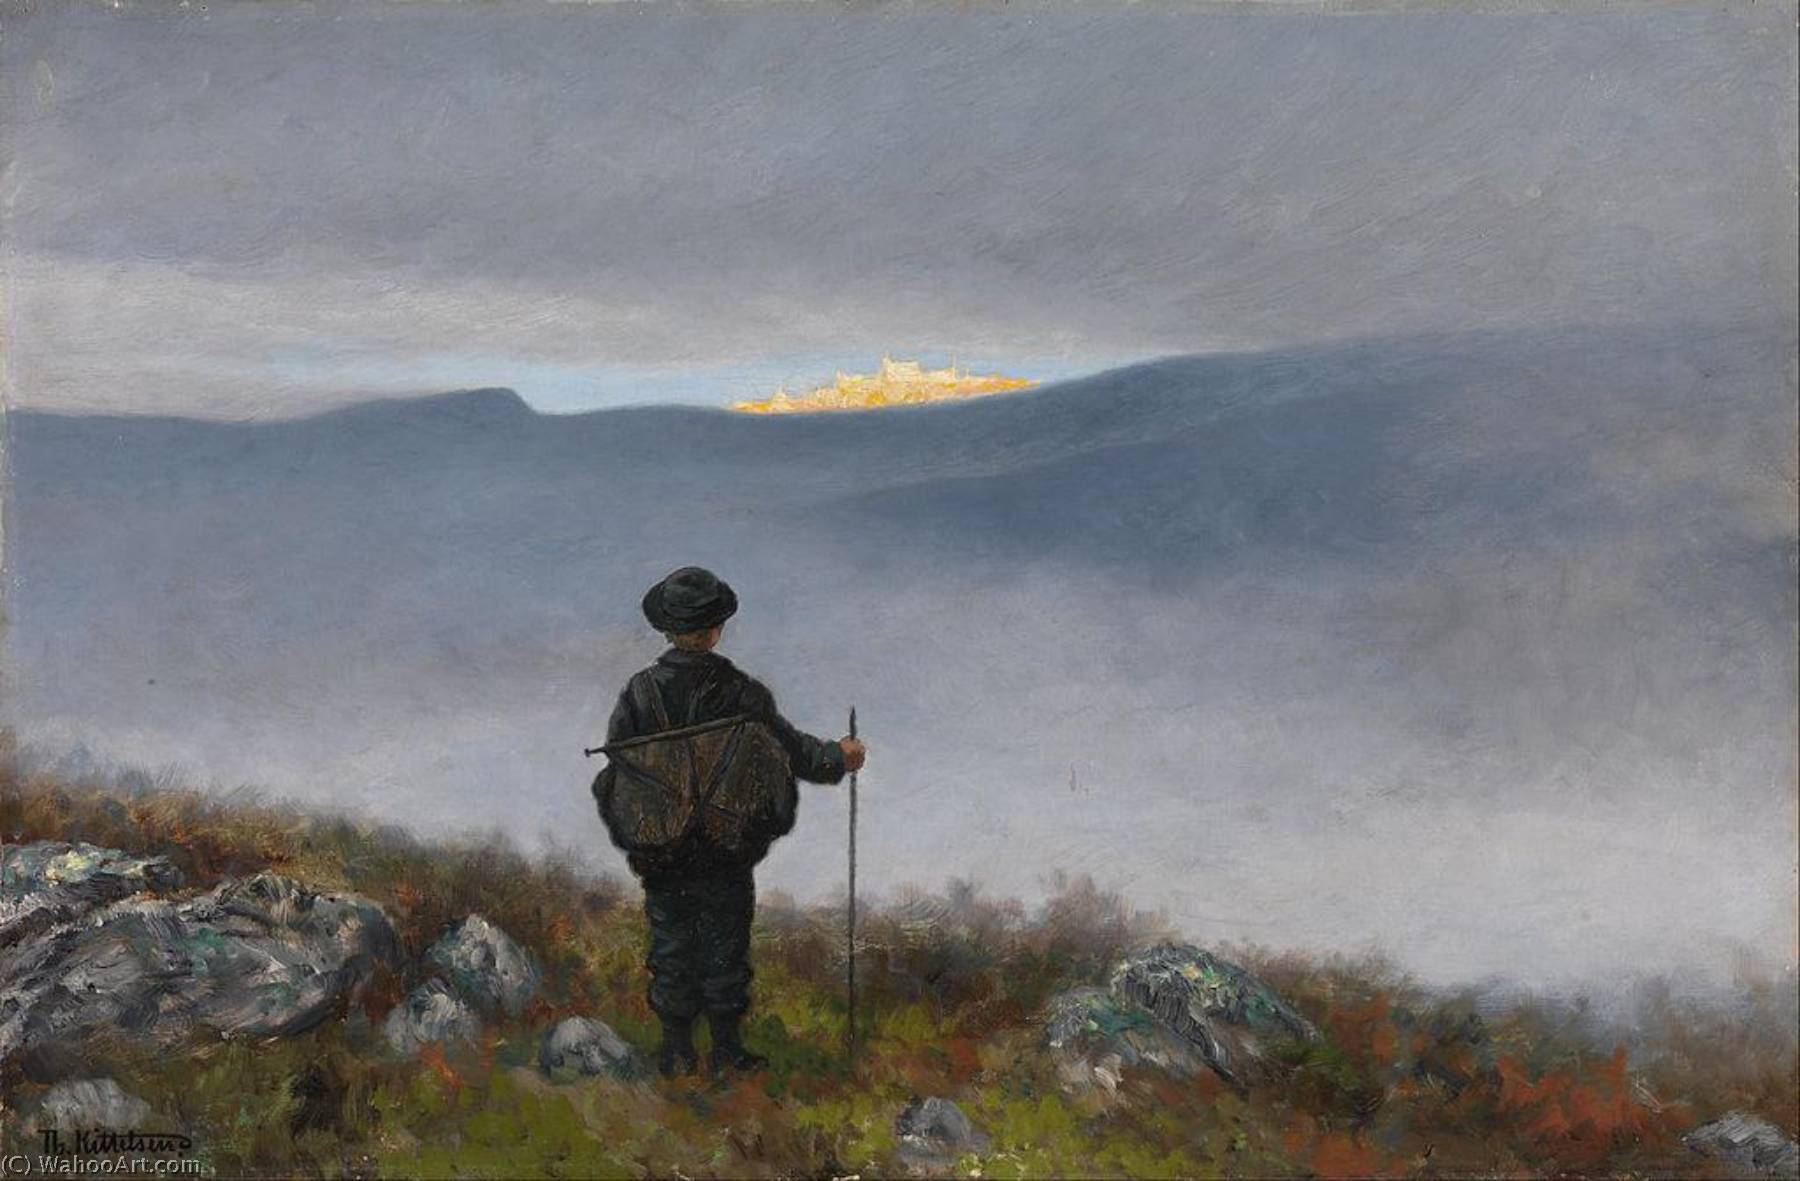 Far, far away Soria Moria Palace shimmered like Gold, 1900 by Theodor Kittelsen (1857-1914) | Oil Painting | ArtsDot.com